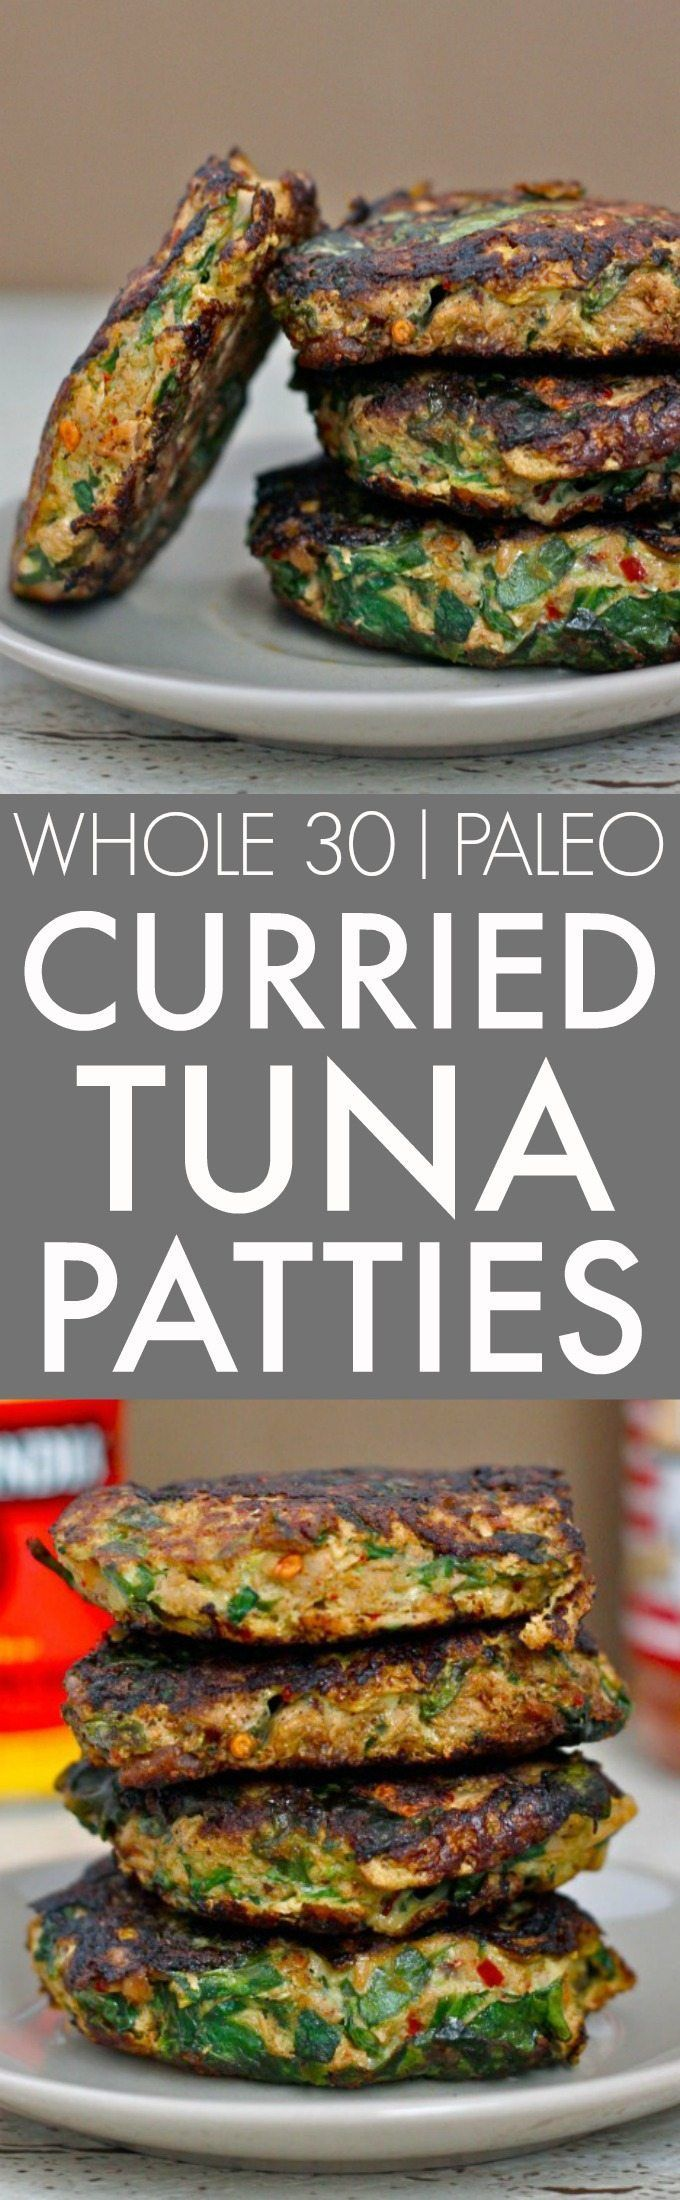 Easy Curried Tuna Patties (Whole 30, Paleo, GF)- Whole30 friendly SUPER flavorful and delicious curried tuna patties using canned tuna or salmon- Quick, delicious, healthy and cheap! {low carb, paleo, gluten free}- thebigmansworld.com